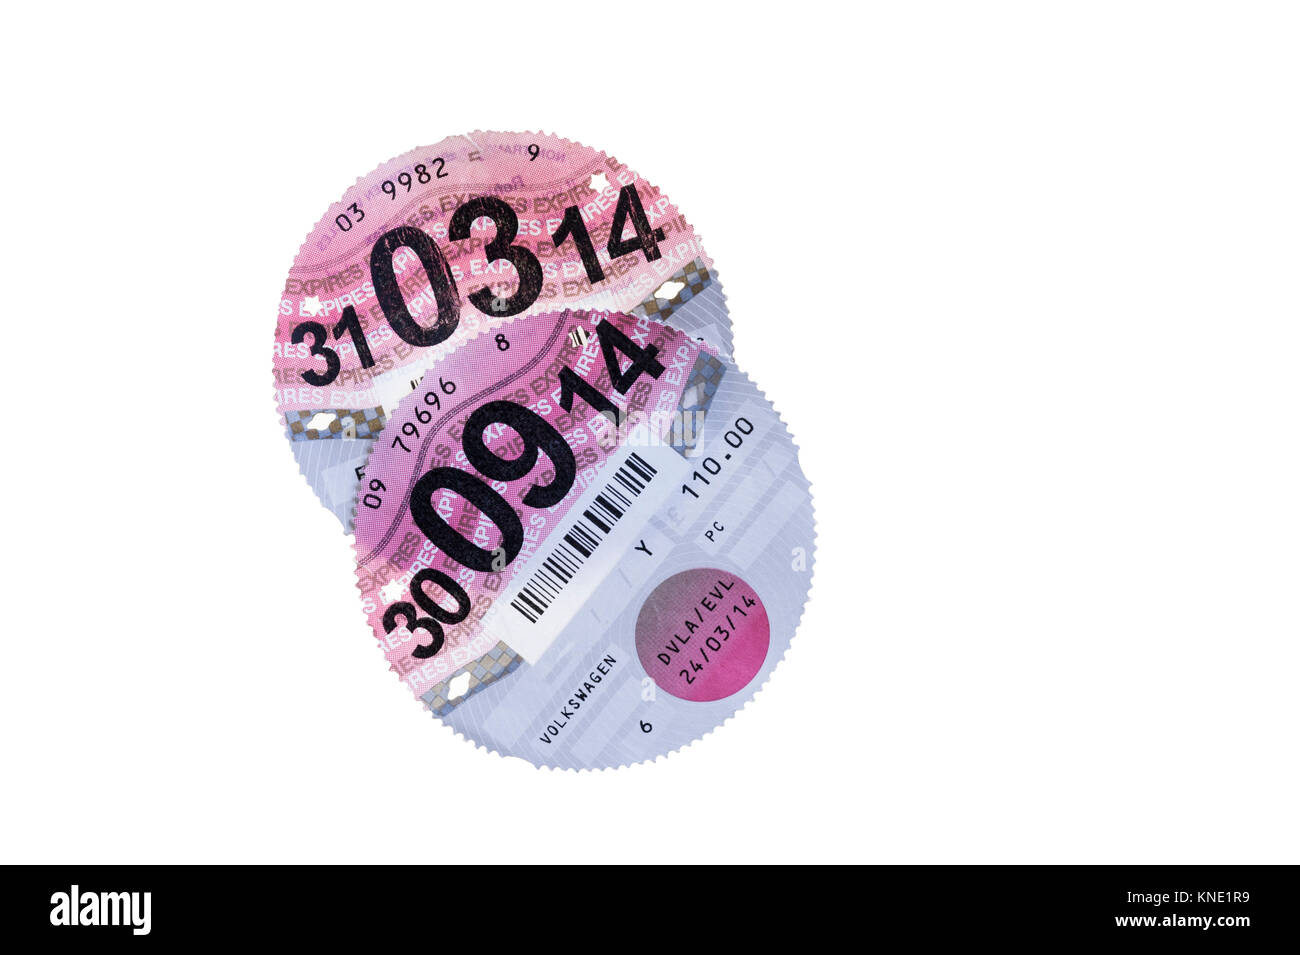 Paper road tax disc 2014 vehicle taxation. - Stock Image